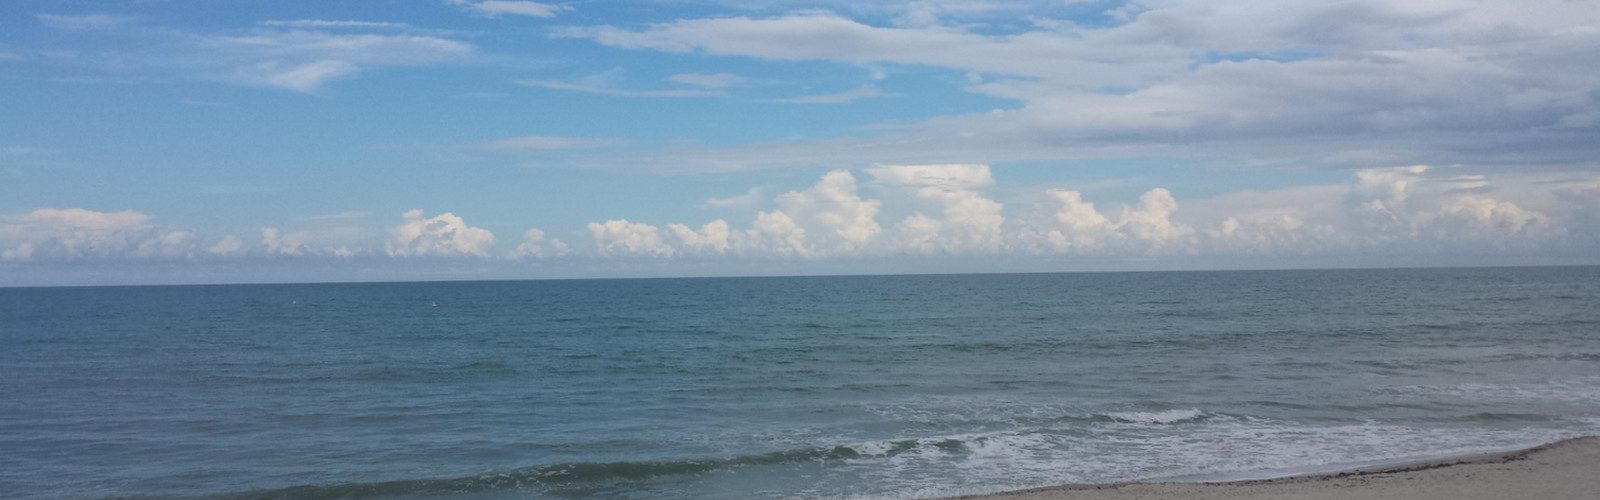 WHITE CLOUDS.BLUE WATER.SAND.1600.900